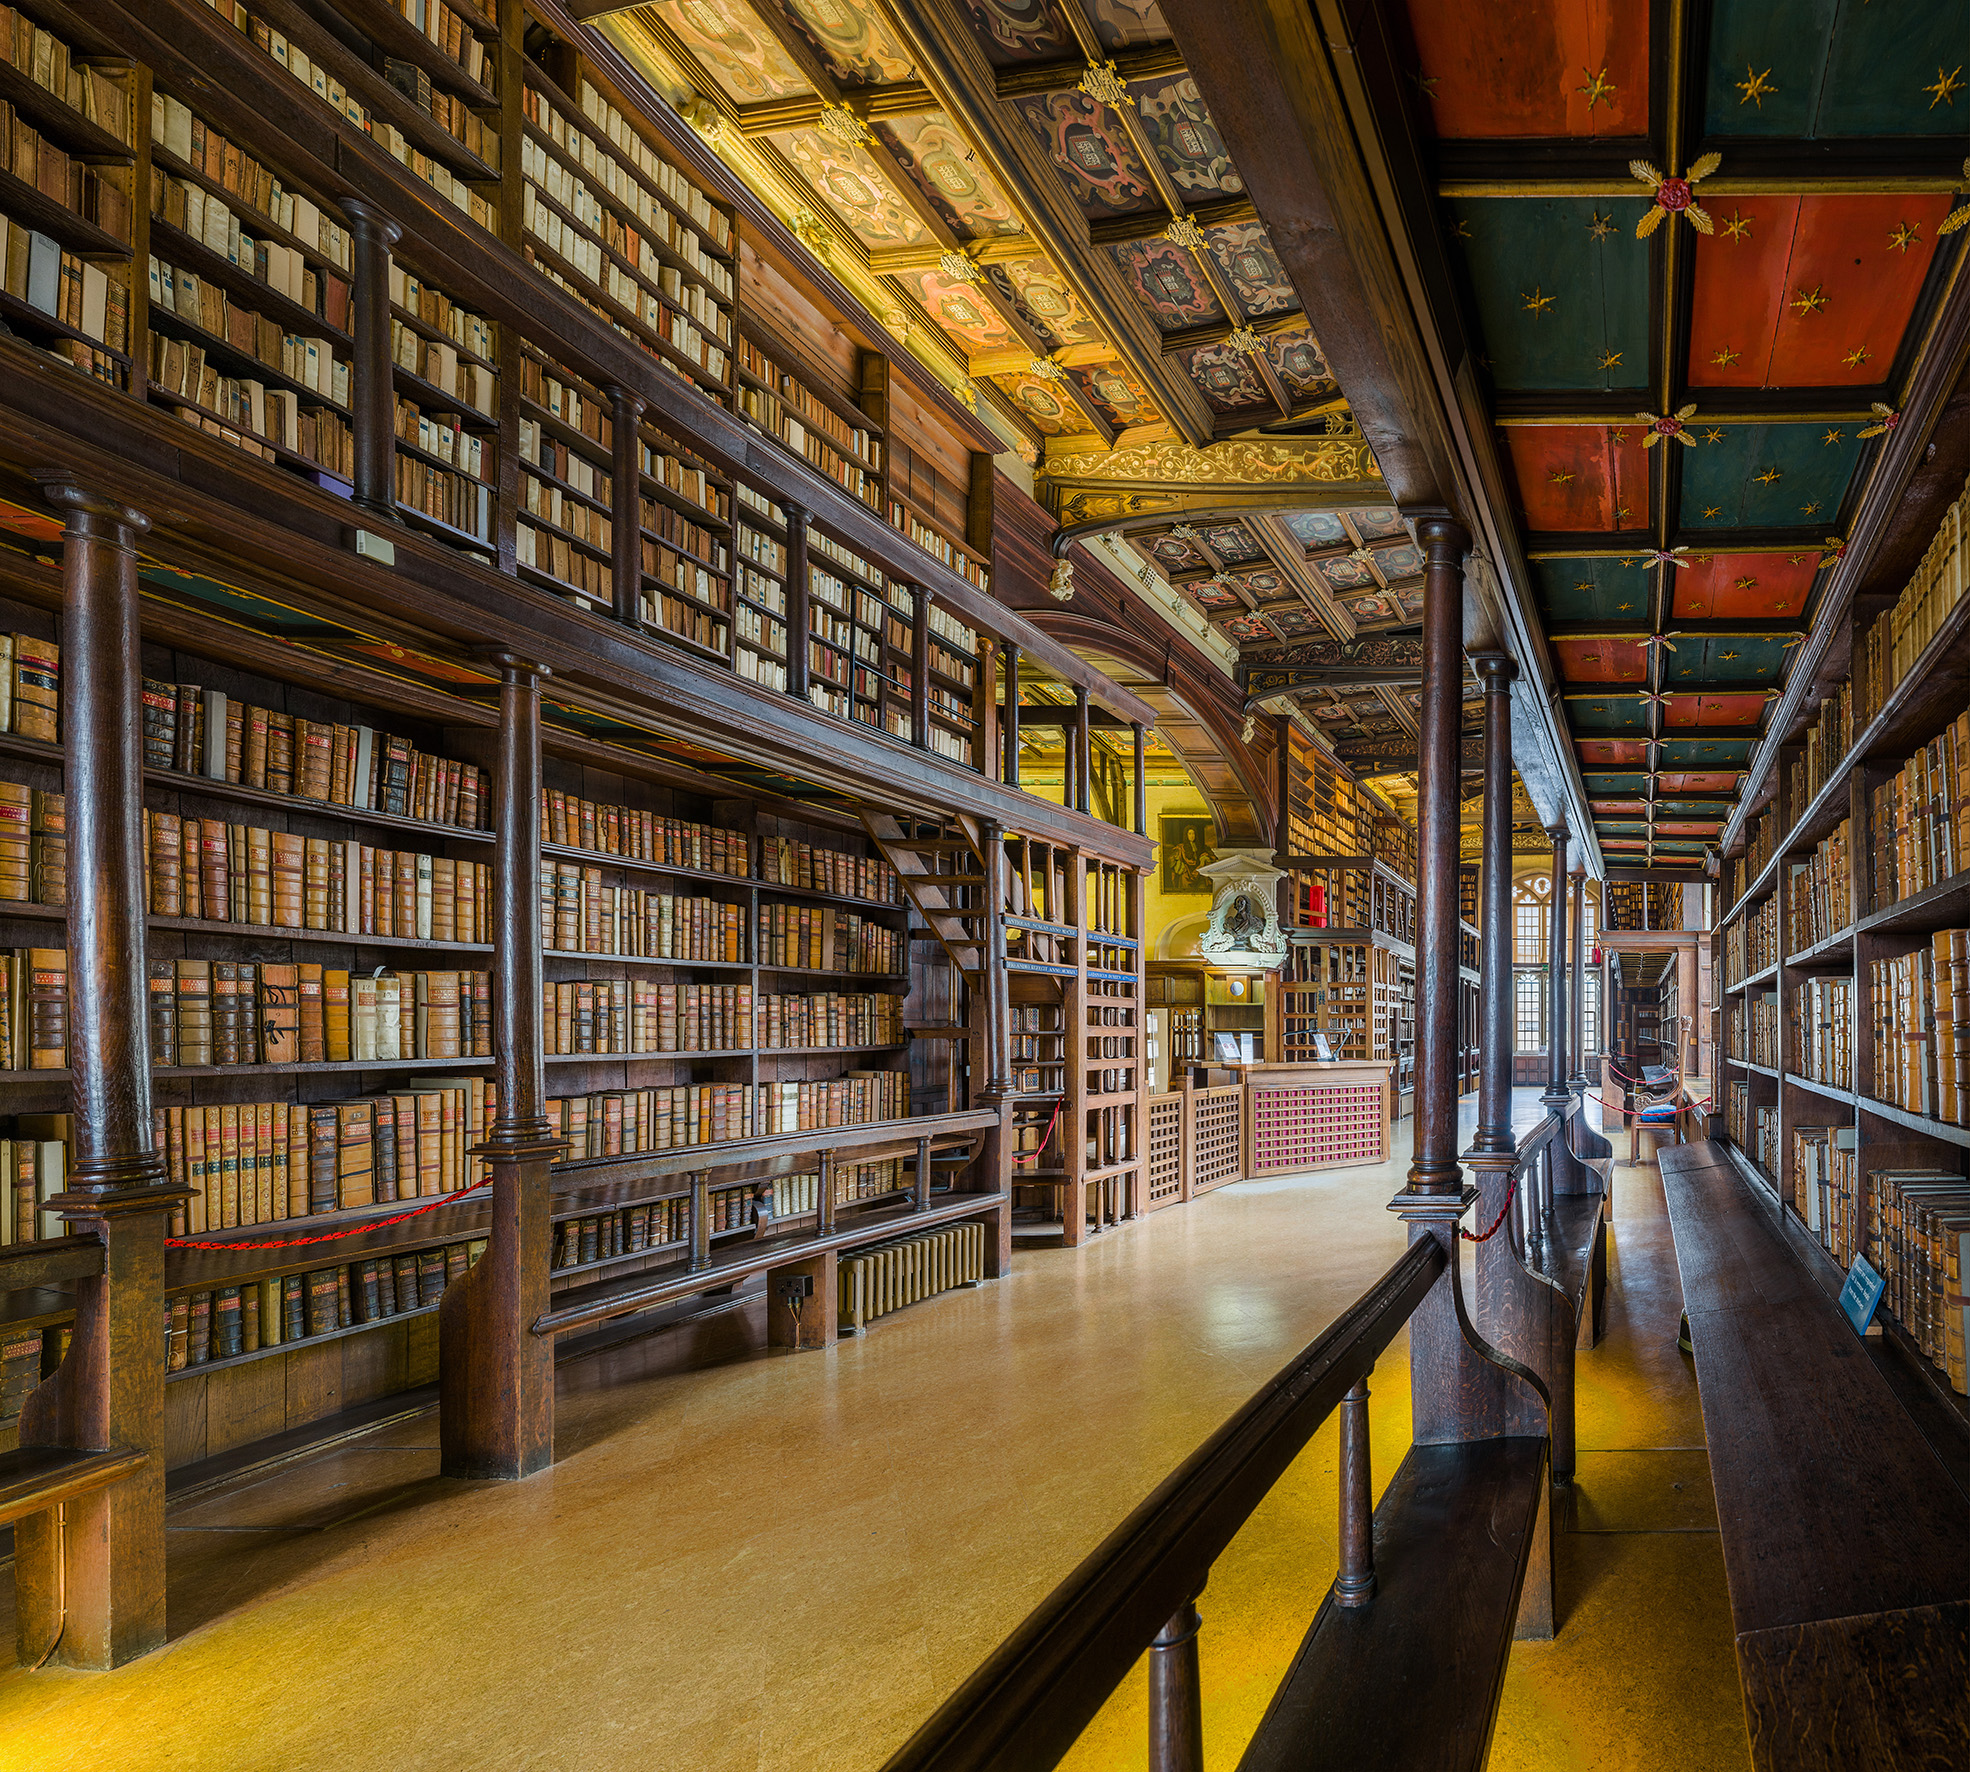 Stunning Pictures of the Oxford Library